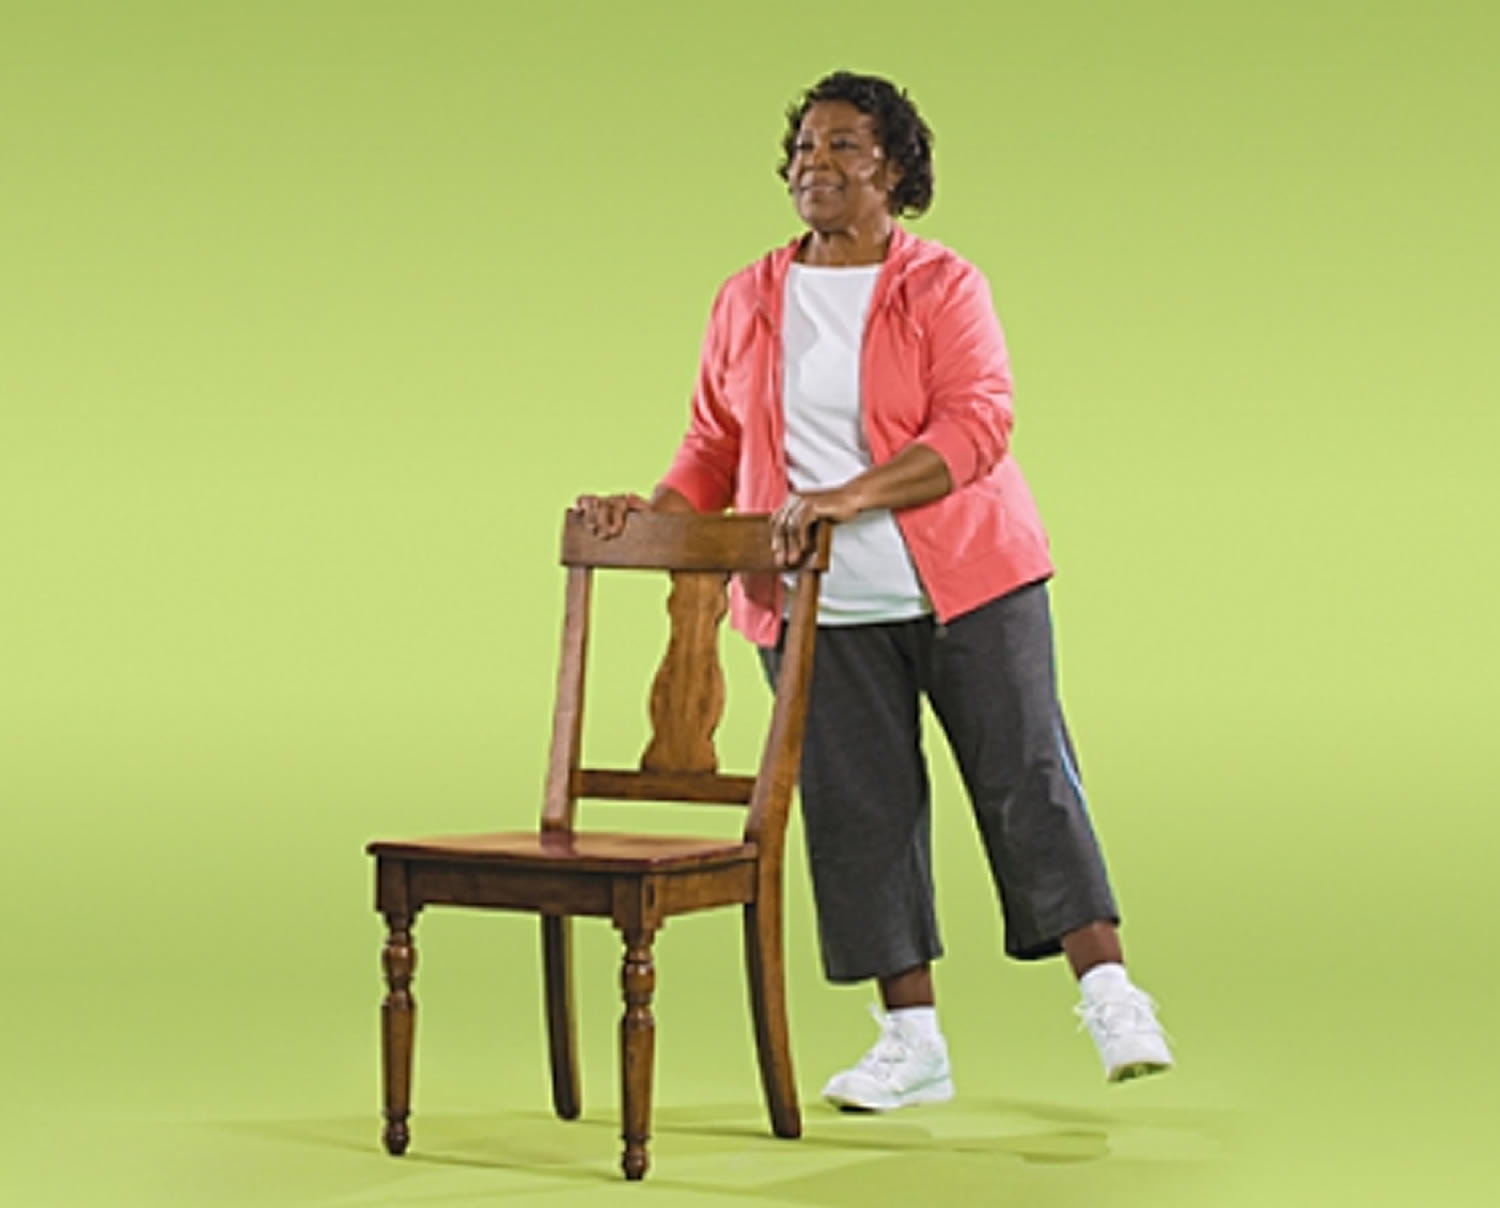 Side Leg Raise Strength Exercise for Seniors